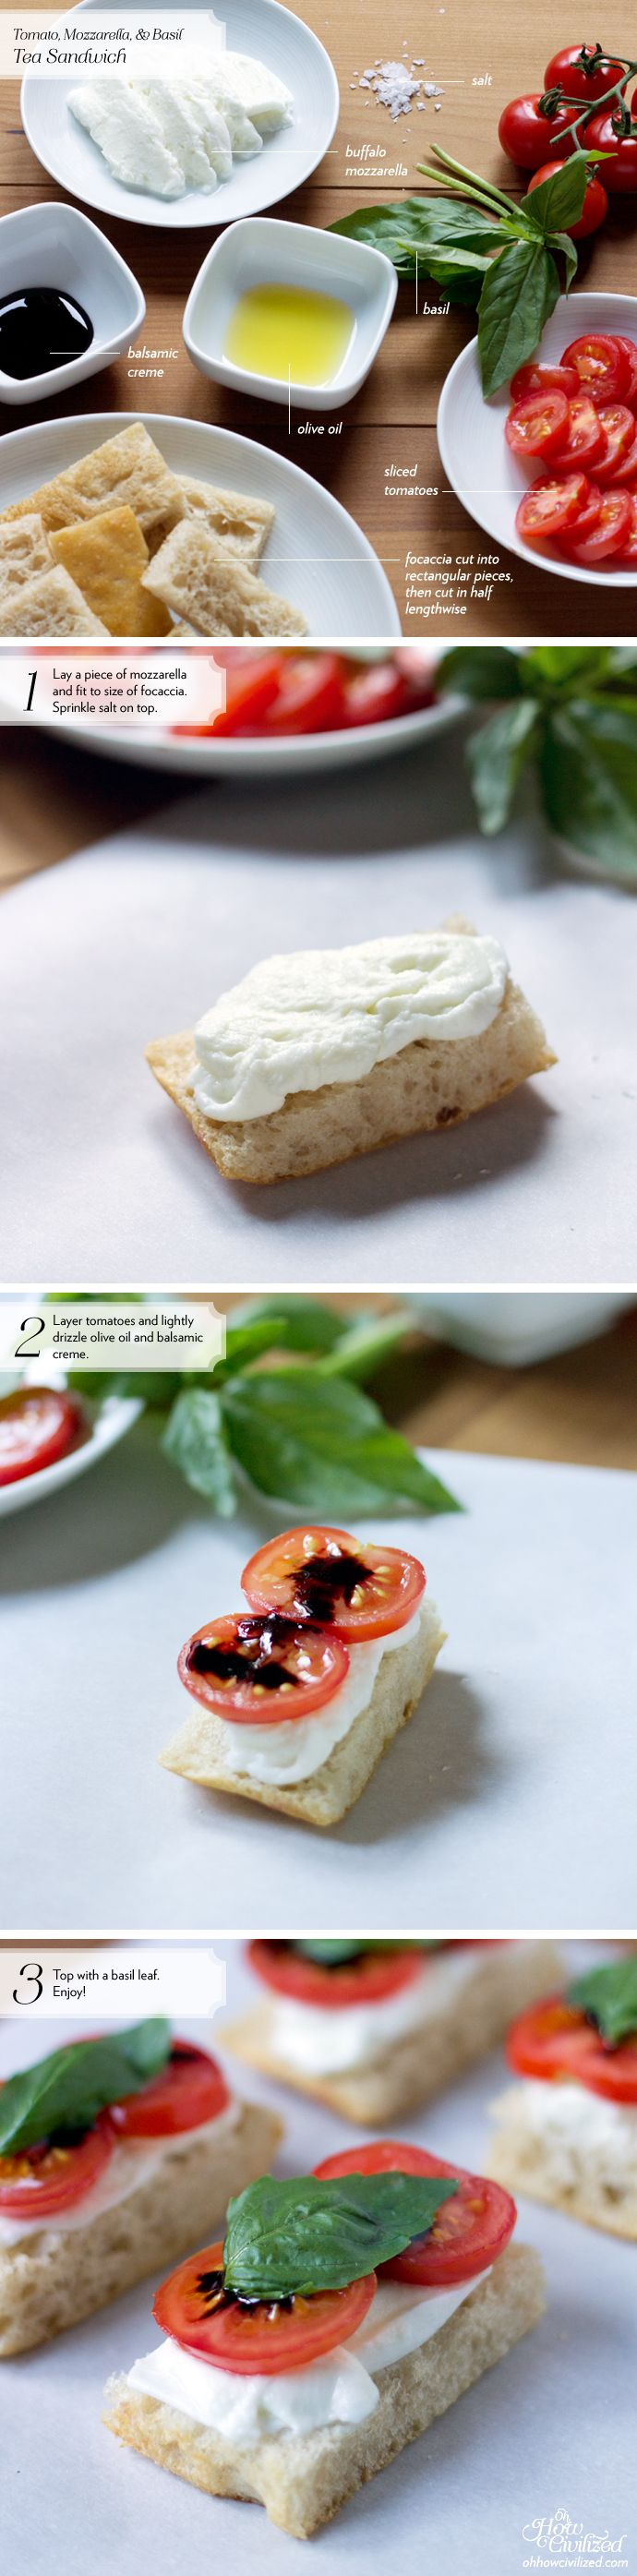 Tea Sandwich: Tomato, Mozzarella, & Basil - Home - Oh, How Civilized